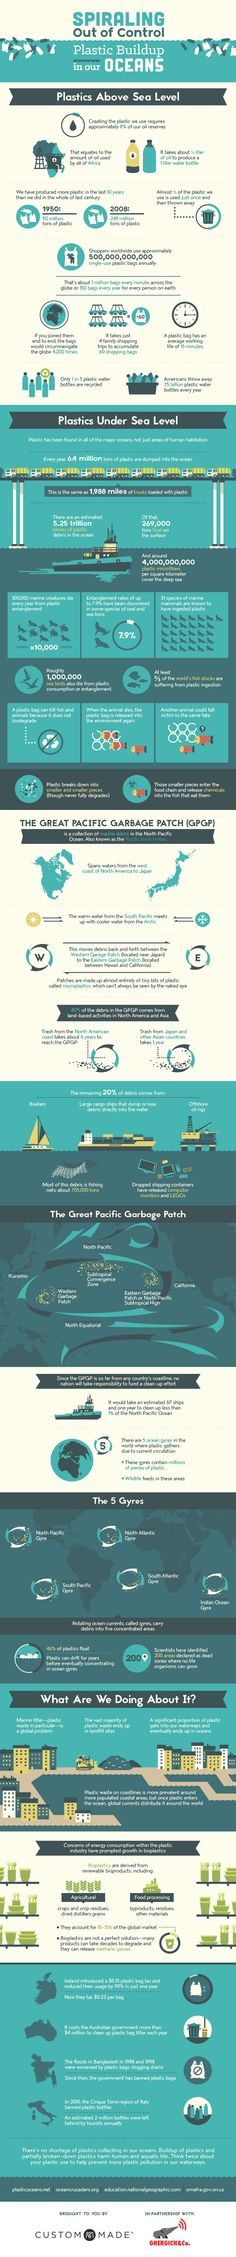 Spiraling Out of Control: Plastic Buildup in Our Oceans | Utopia.de